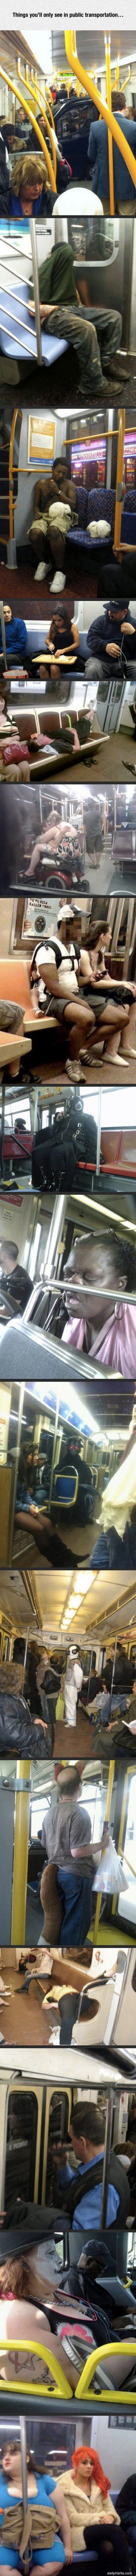 only on public transportation funny picture